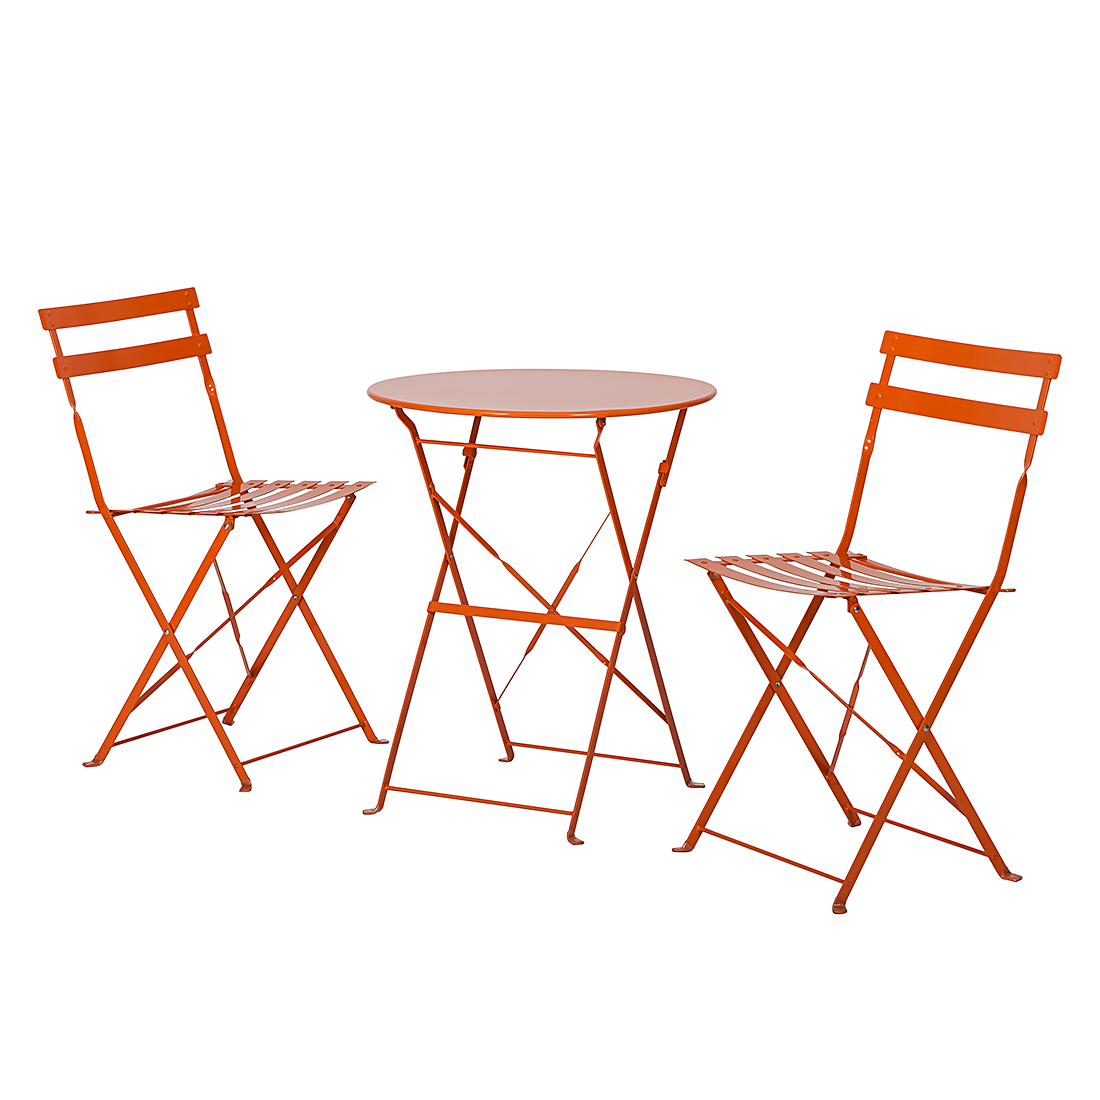 balkonset sitzgruppe loungeset garten 3 teilig tisch st hle orange metall neu ebay. Black Bedroom Furniture Sets. Home Design Ideas